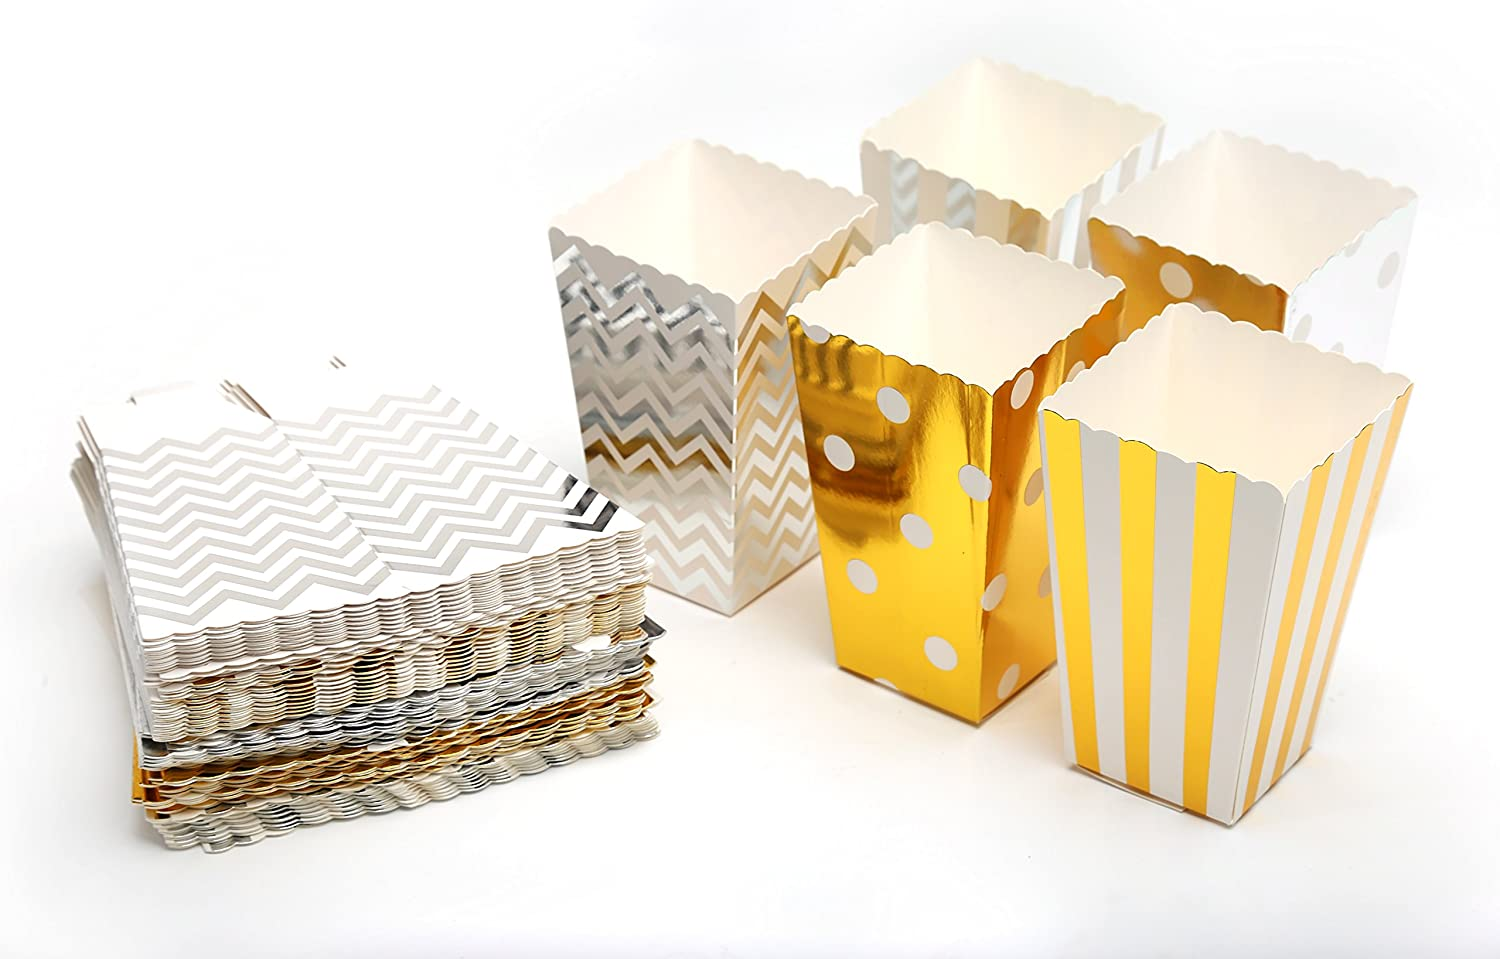 Smartkitch Popcorn Boxes Cardboard Candy Container 60pcs with 5 Pattern in Gold and Silver